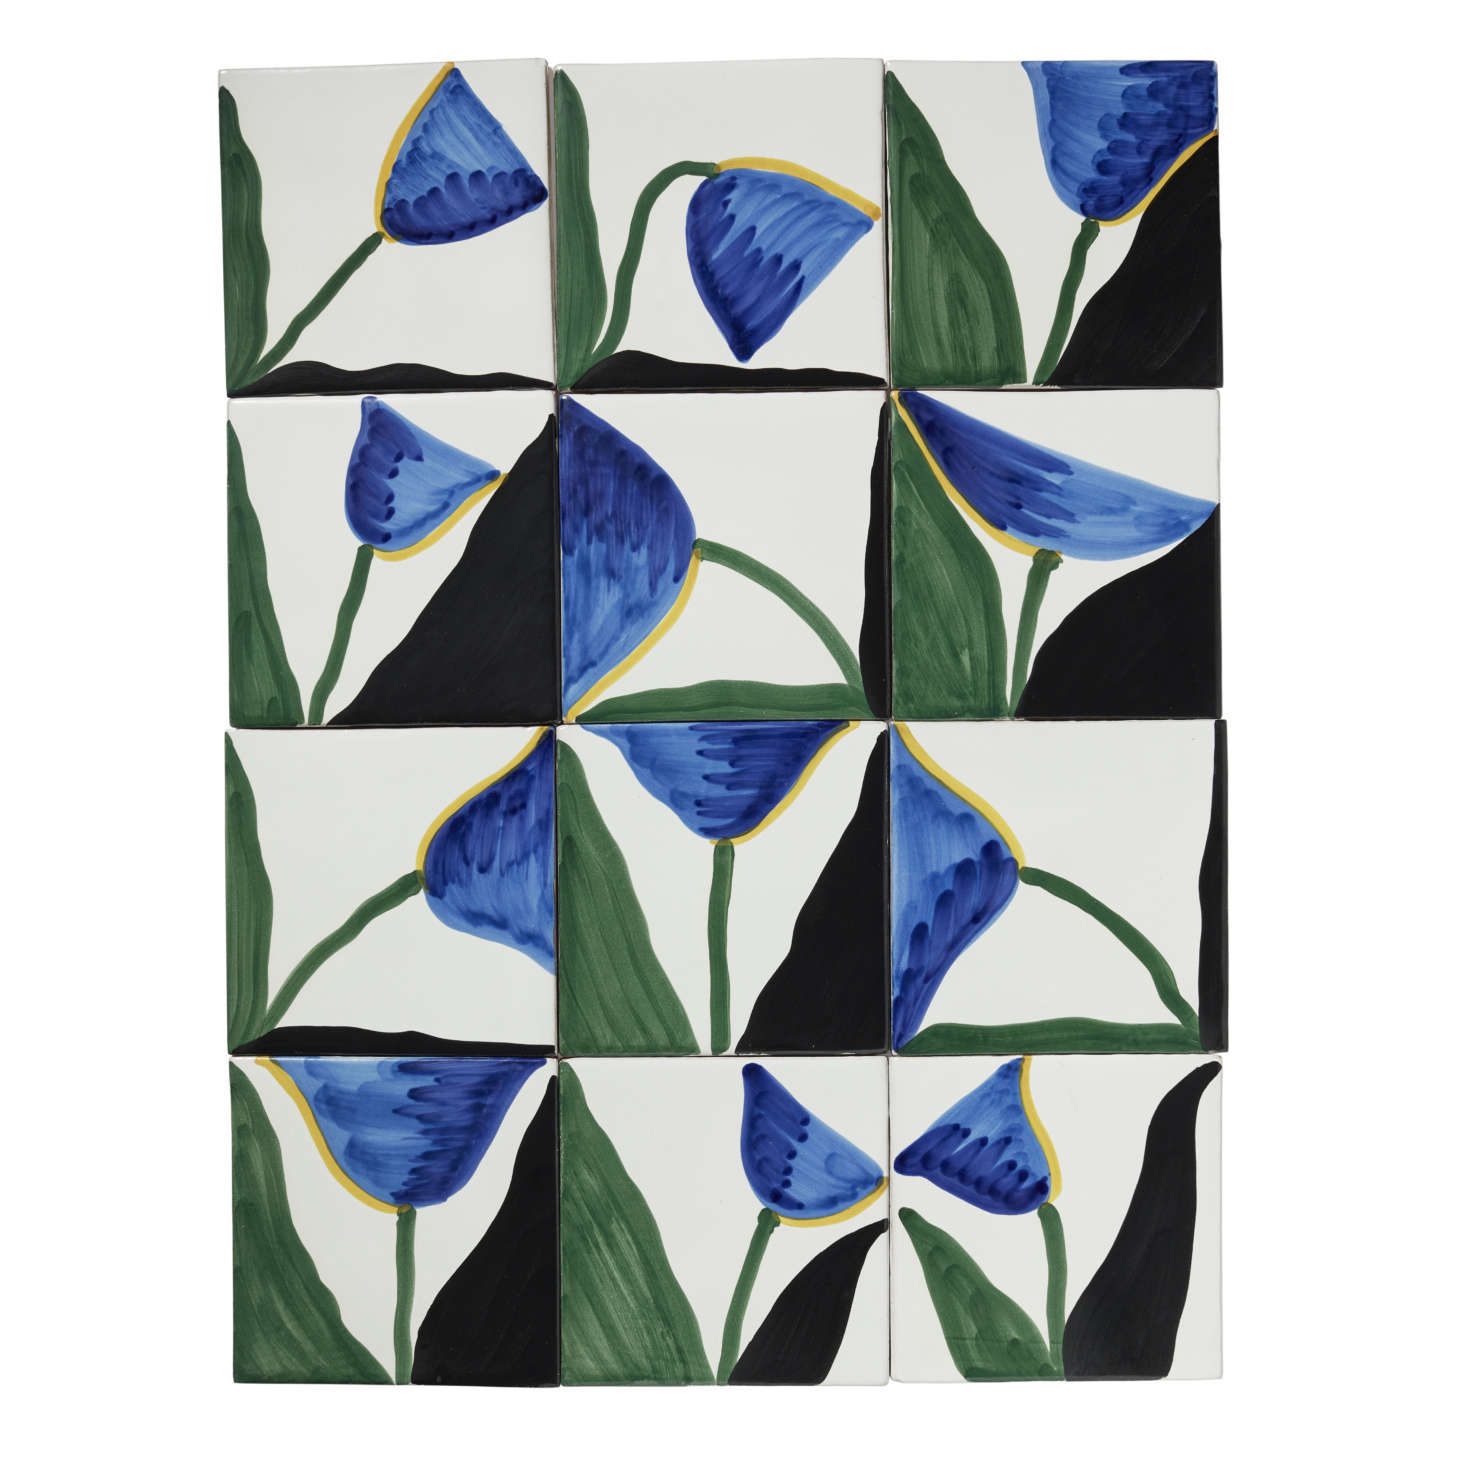 The Tulip designs work well together. Watson is planning to create a series of larger-scale Wayne Pate tile murals next.